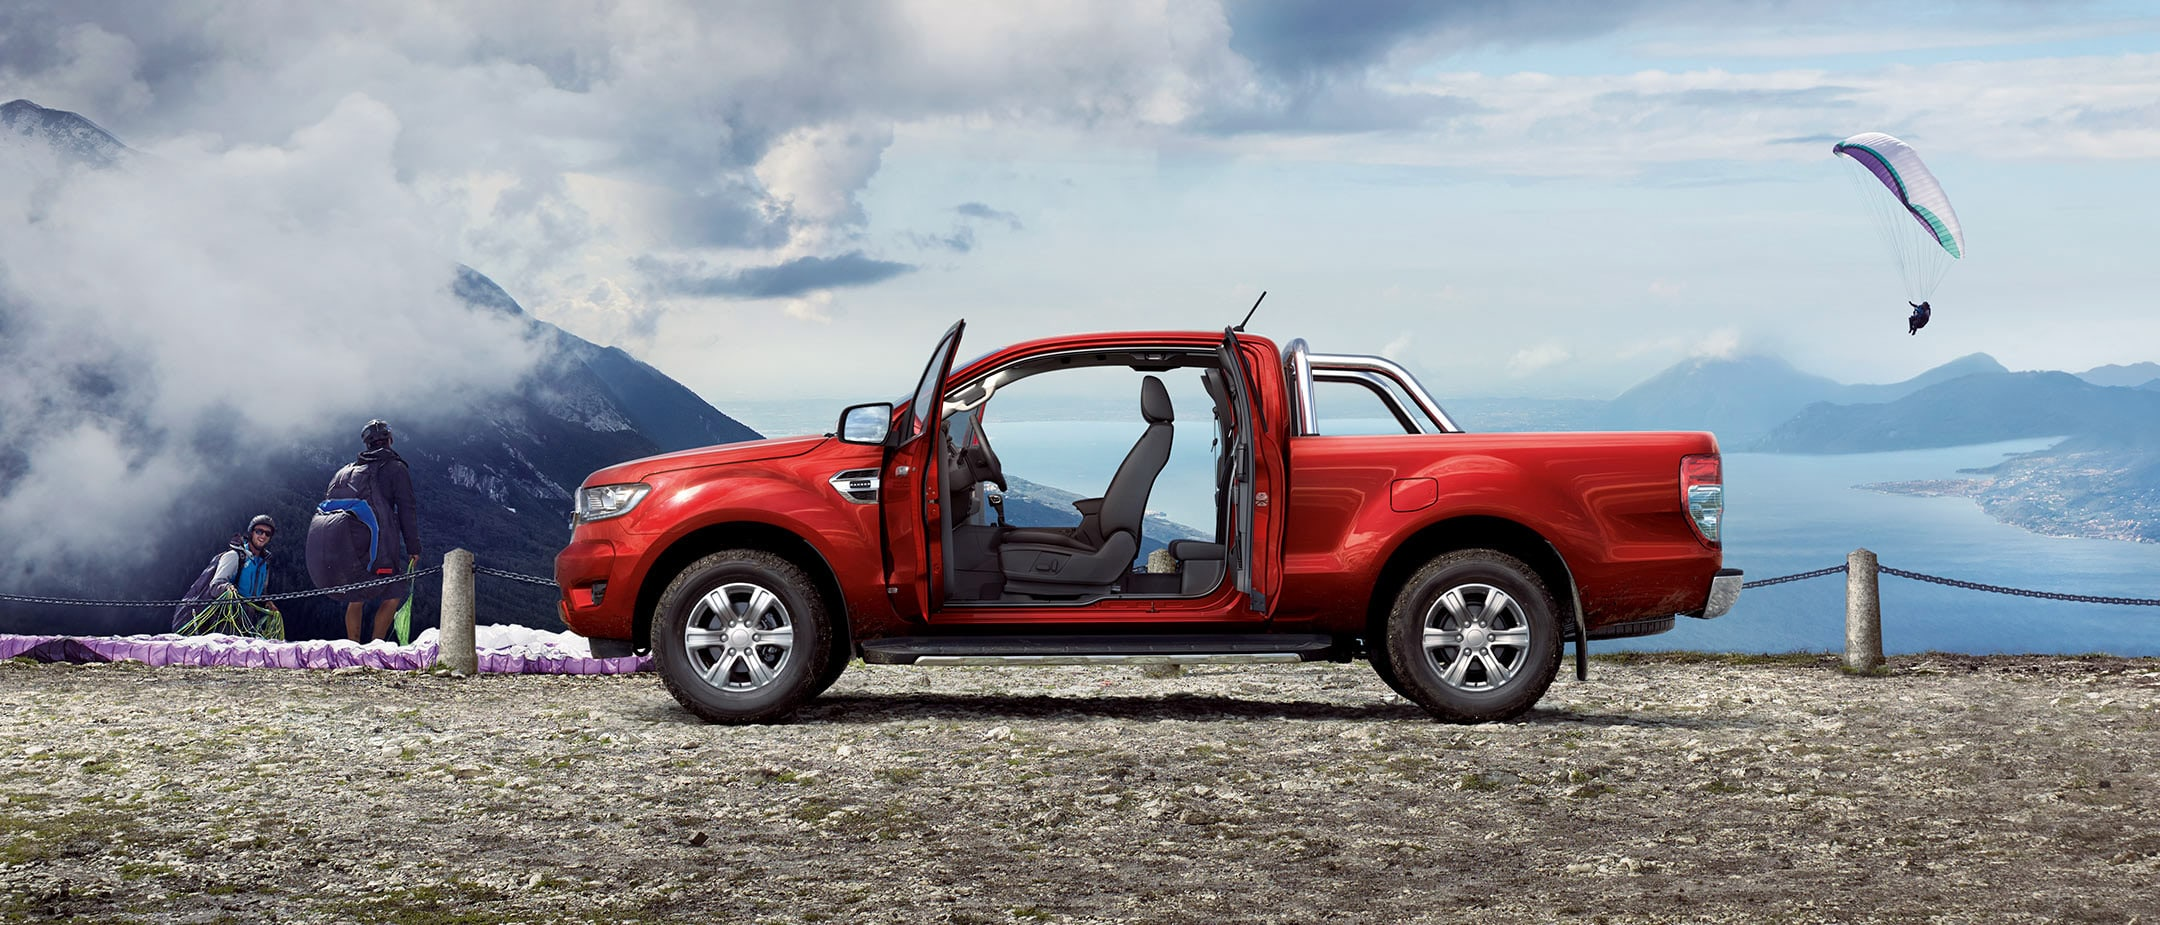 Ford Ranger Super Cab parked in industiral area